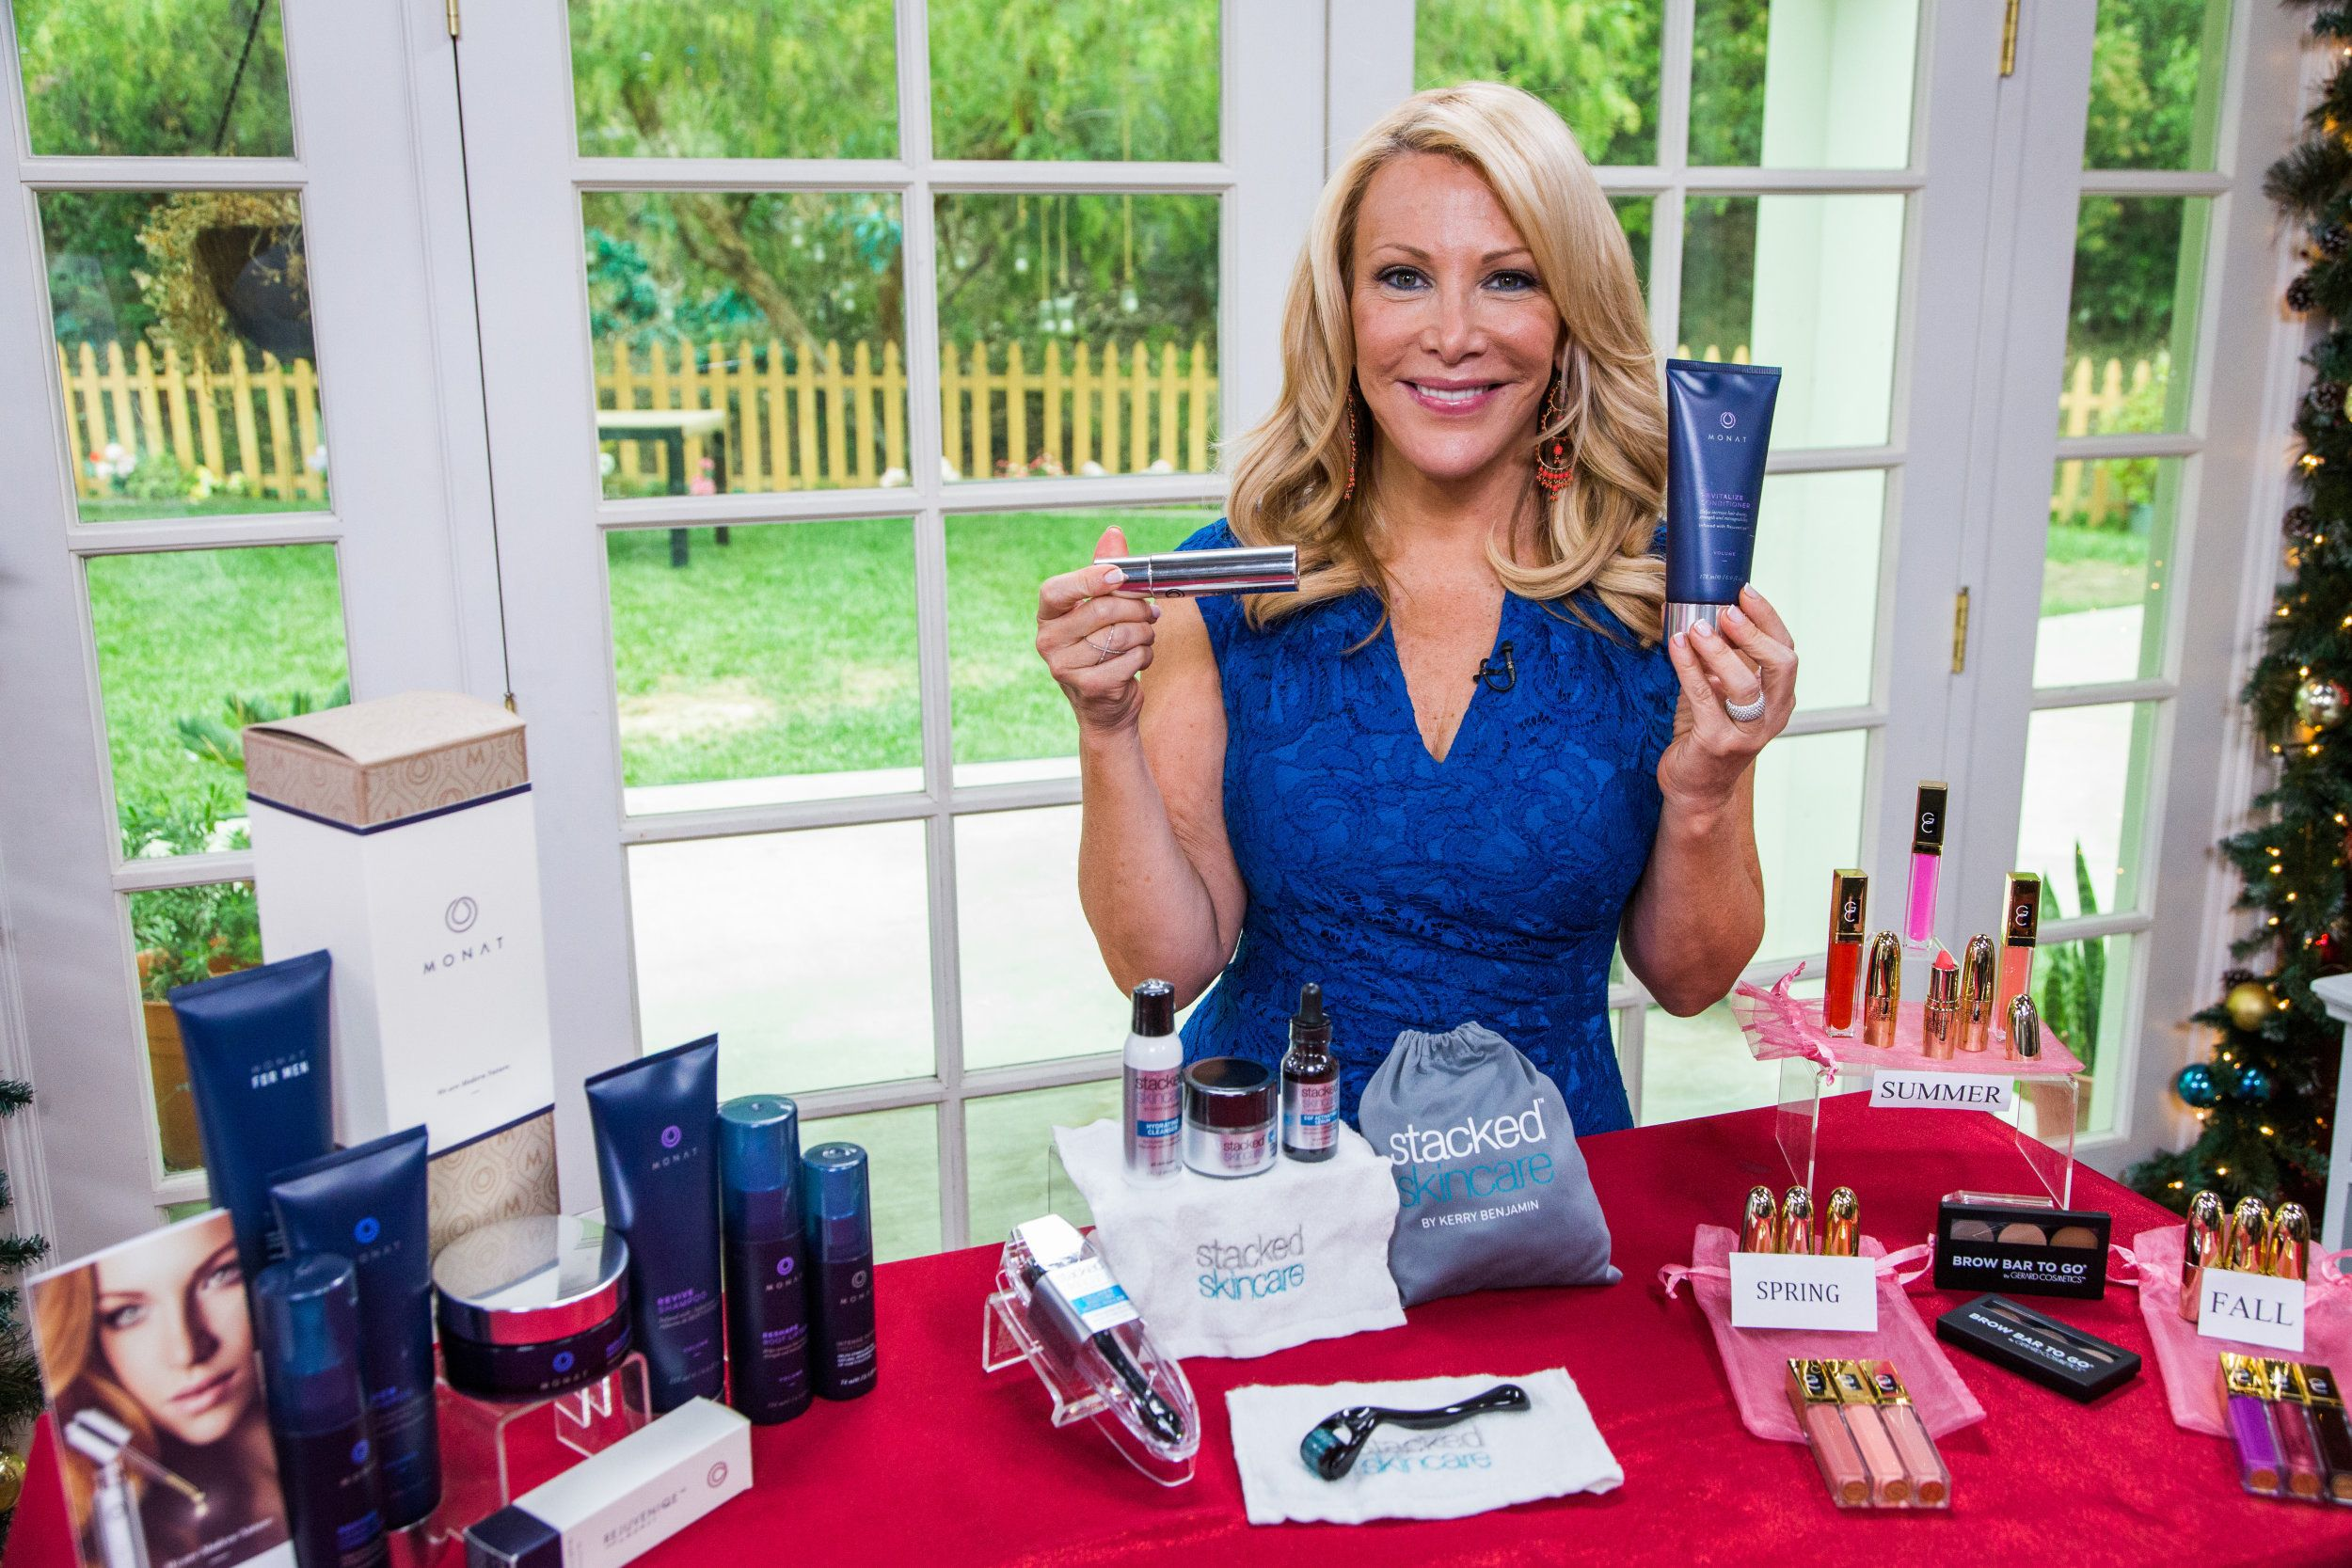 Kym Douglas is back with some very helpful products that will get your ready for those holiday parties.